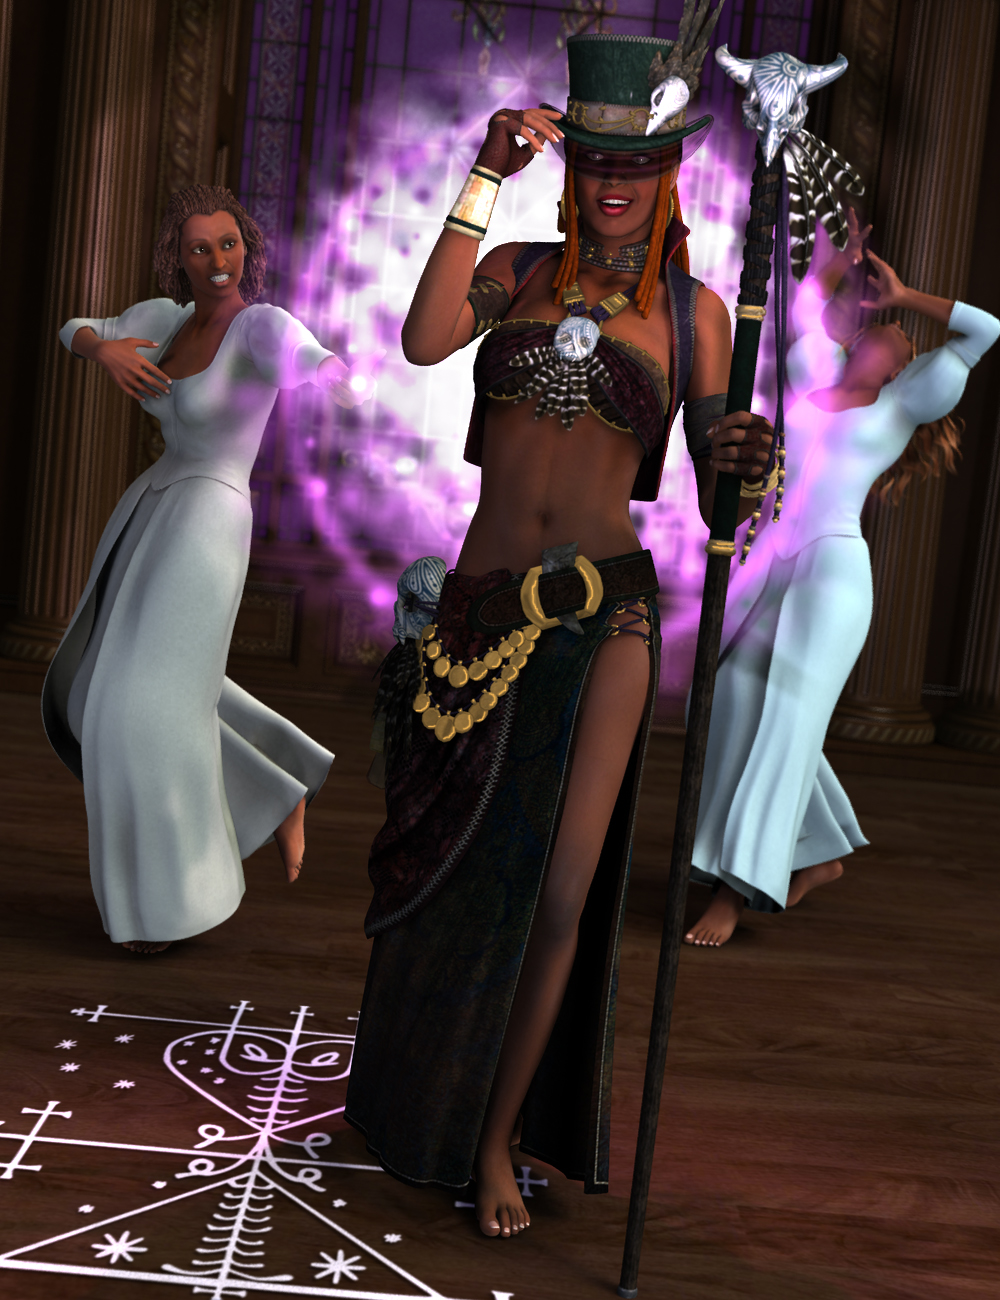 Voodoo Magic Poses for V4.2 and V5 by: FeralFey, 3D Models by Daz 3D